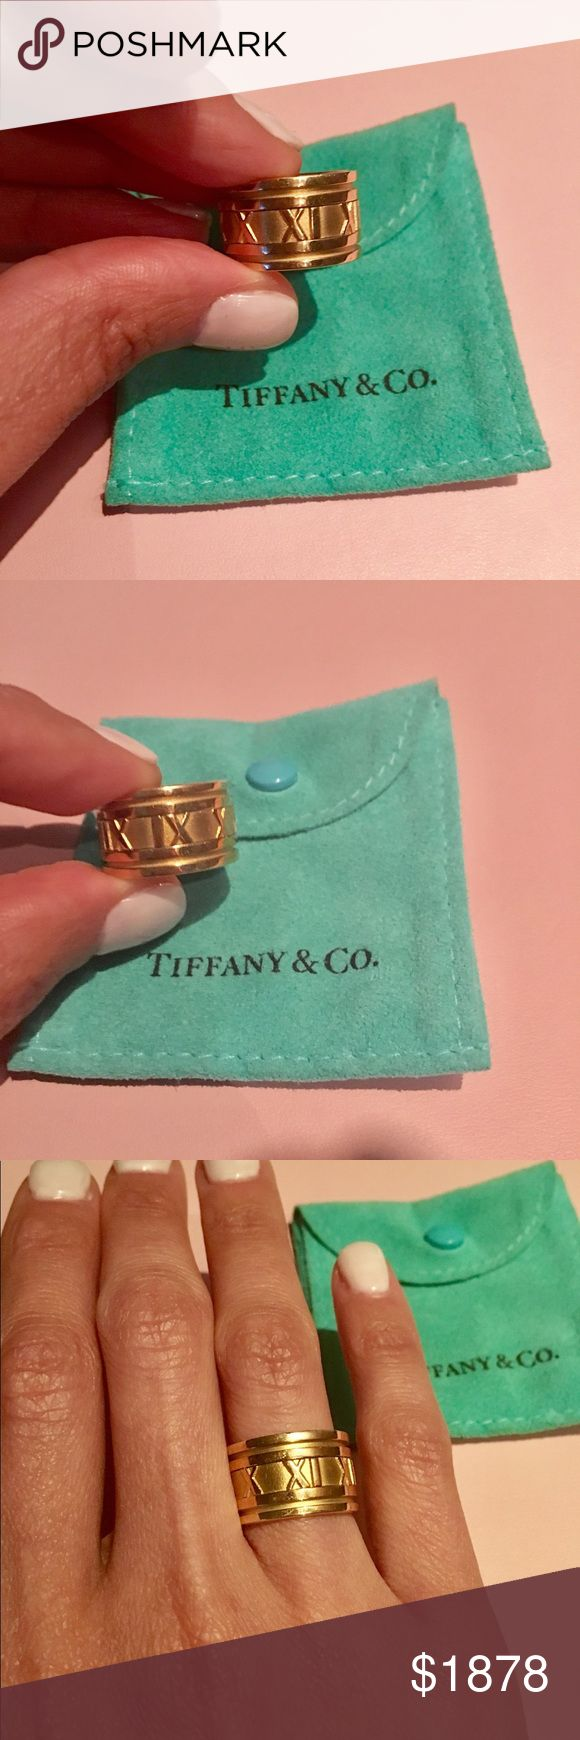 Tiffany & Co. 18K Yellow Atlas wide band ring-sz 6 Tiffany & Co. 18K yellow gold Atlas Roman Numeral Wide band ring size 6.  Hallmark stamped inside: Tiffany & Co. 1995 750 Italy. Roman numeral design Crafted of lustrous 18-karat yellow gold, this Atlas ring features a polished finish Carved ring features a polished finish with matte accents. Band measures 12 mm wide x 1.8 mm thick This unique piece is estate jewelry, which means previously owned. Slight wear & tear surface scuffs, which…